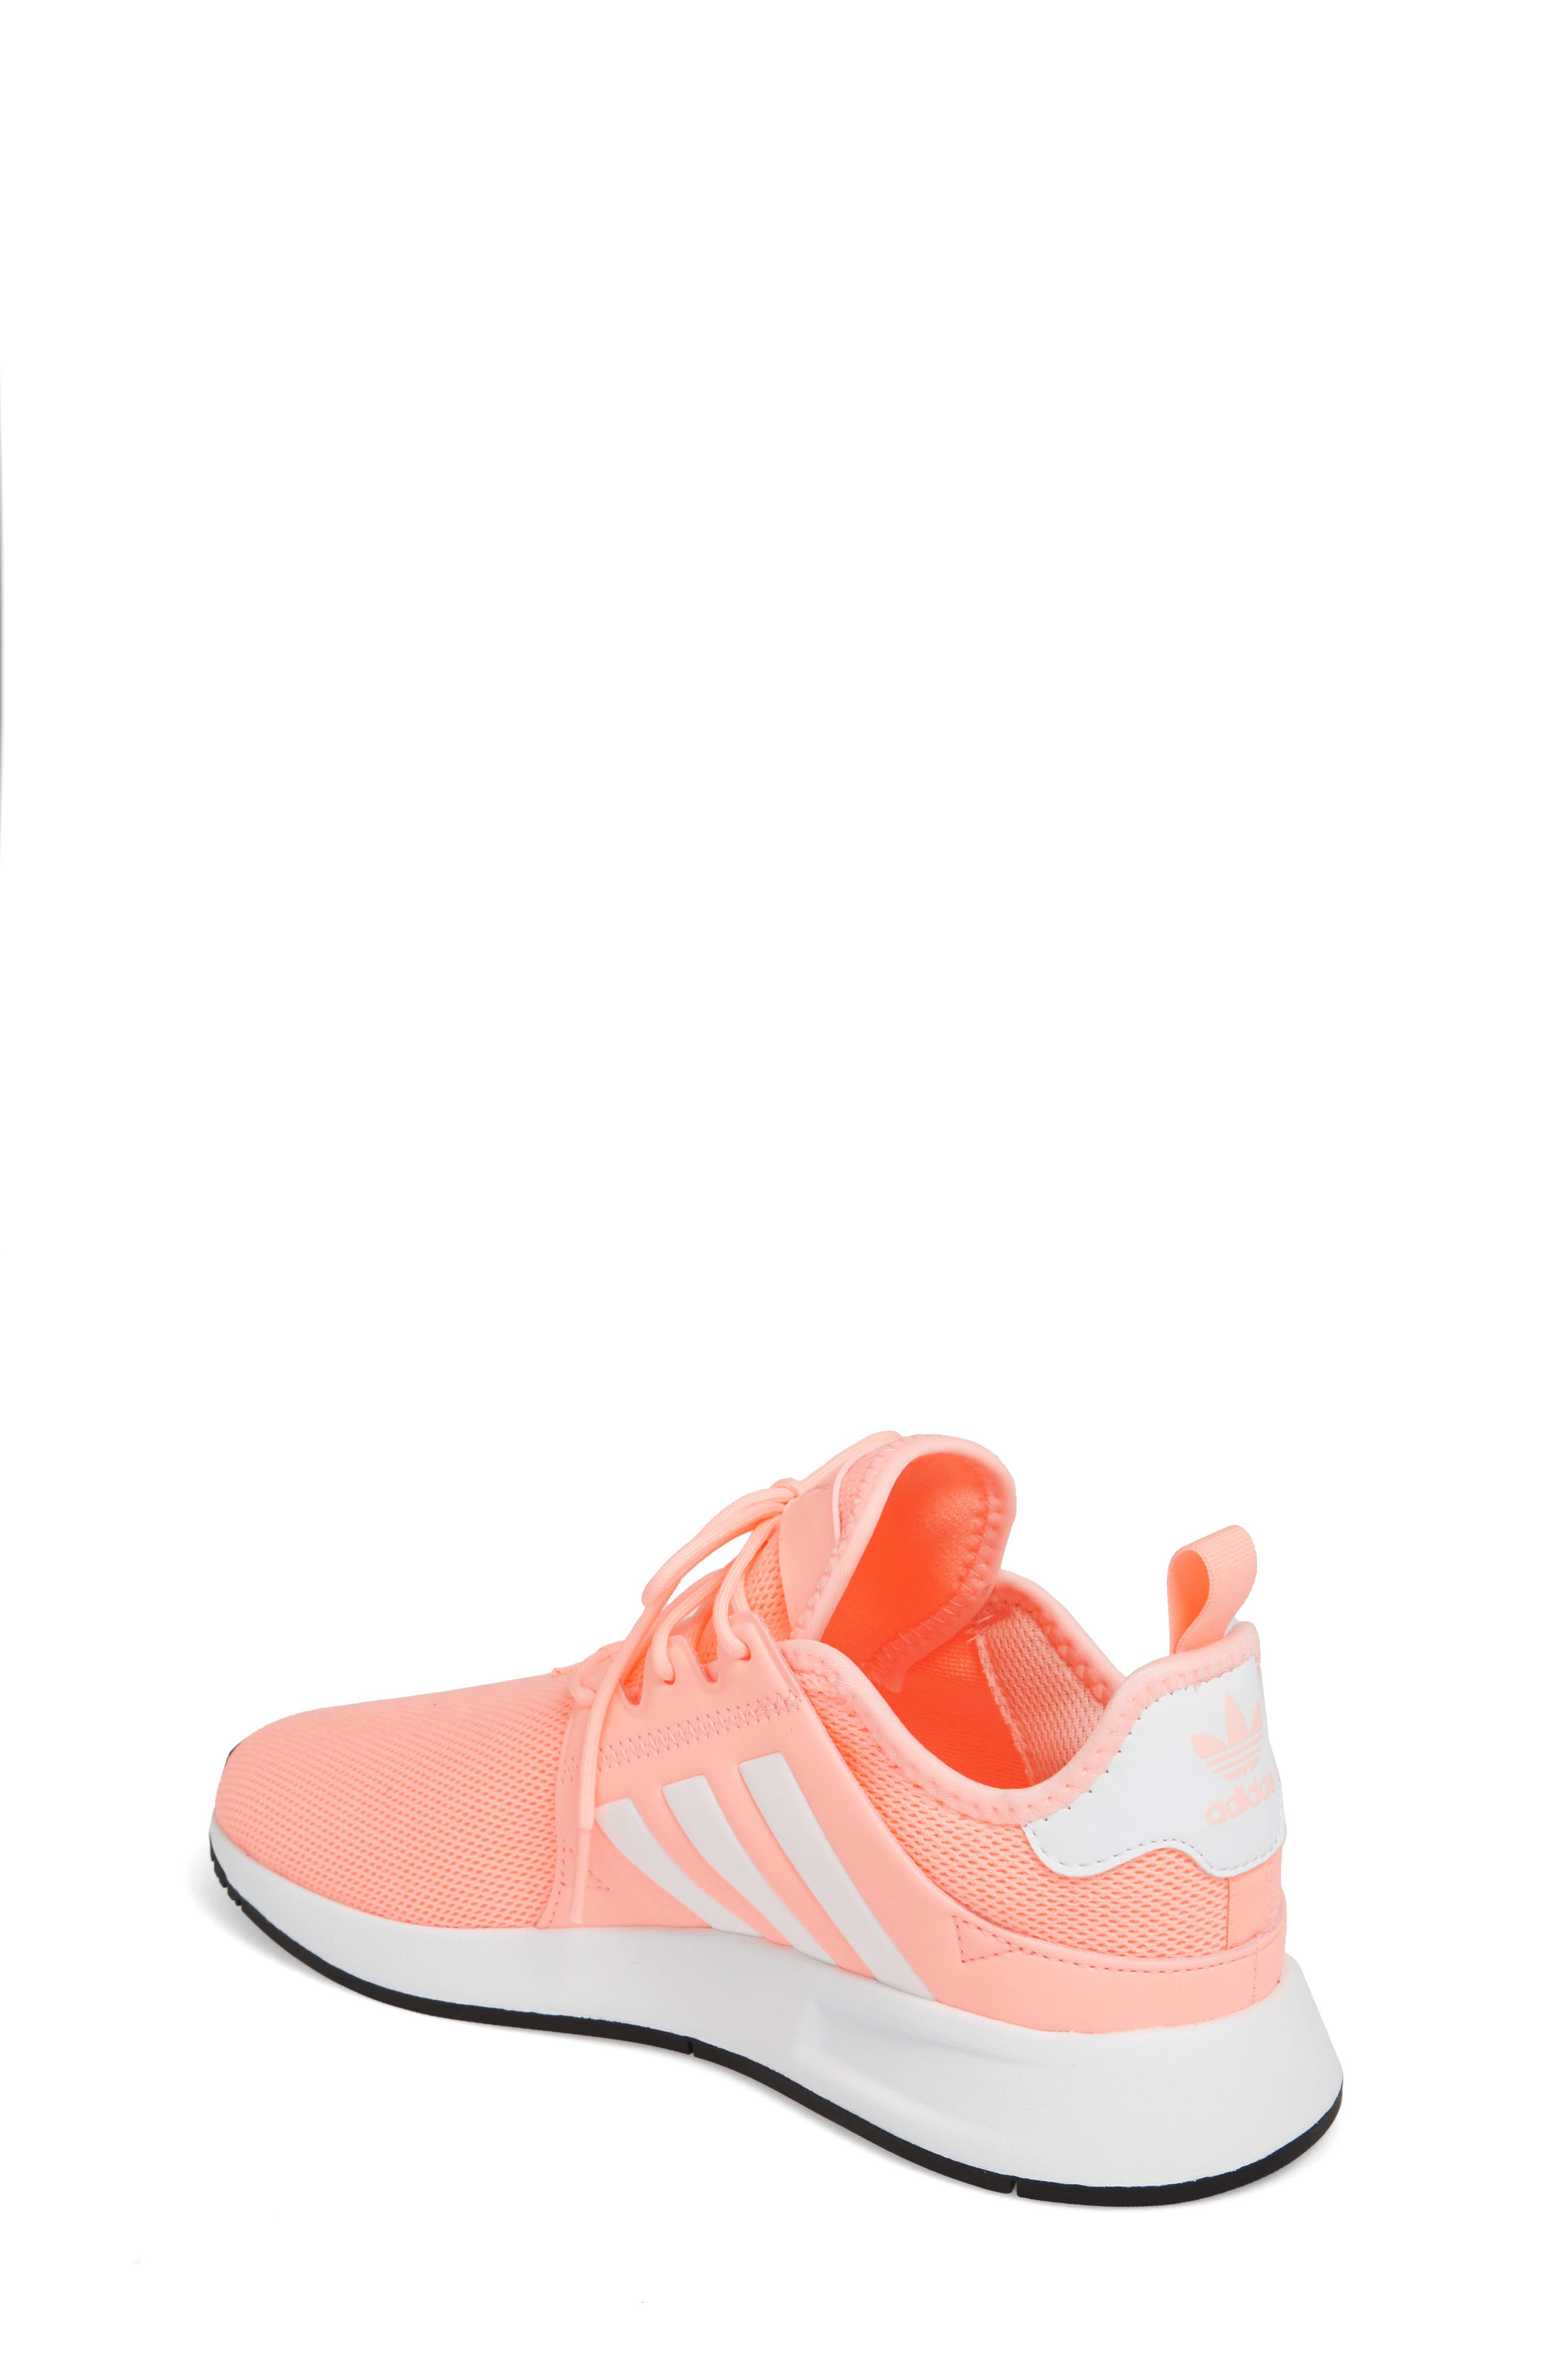 X_PLR Sneaker,                             Alternate thumbnail 2, color,                             Clear Orange/ White